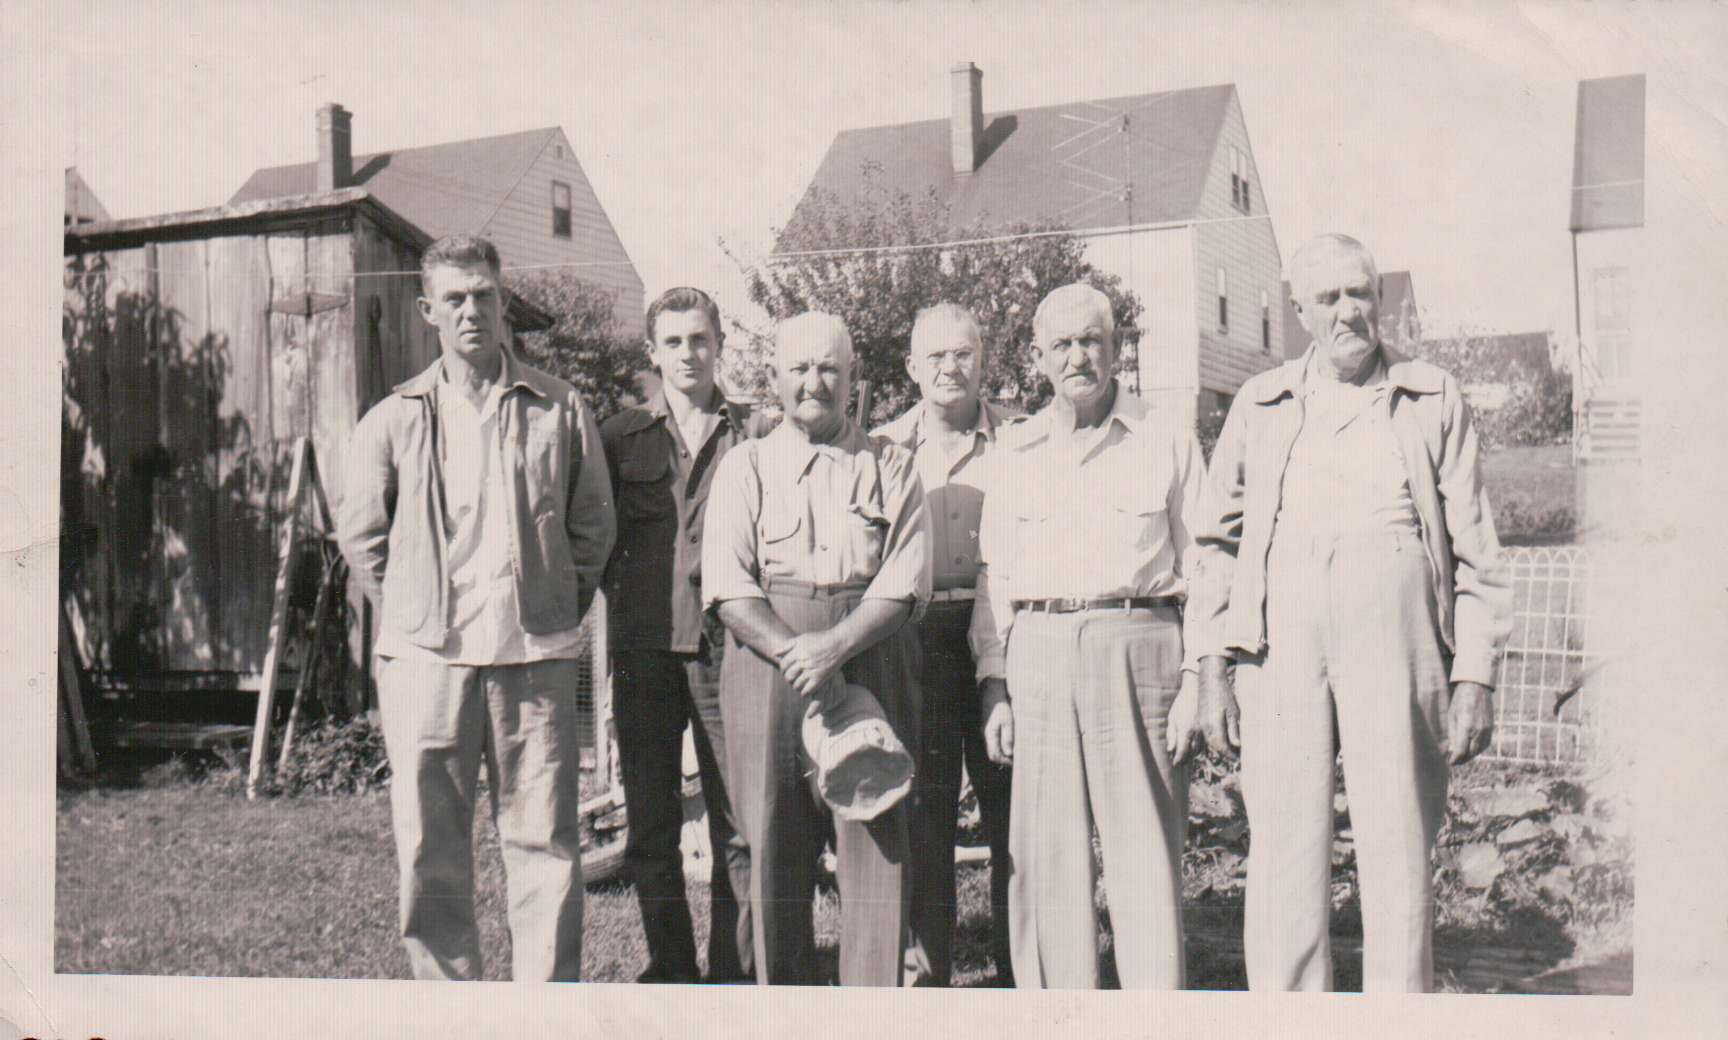 The guys' together in Pittsburgh for baseball!--August 24, 1952-Natrona Heights, Pa